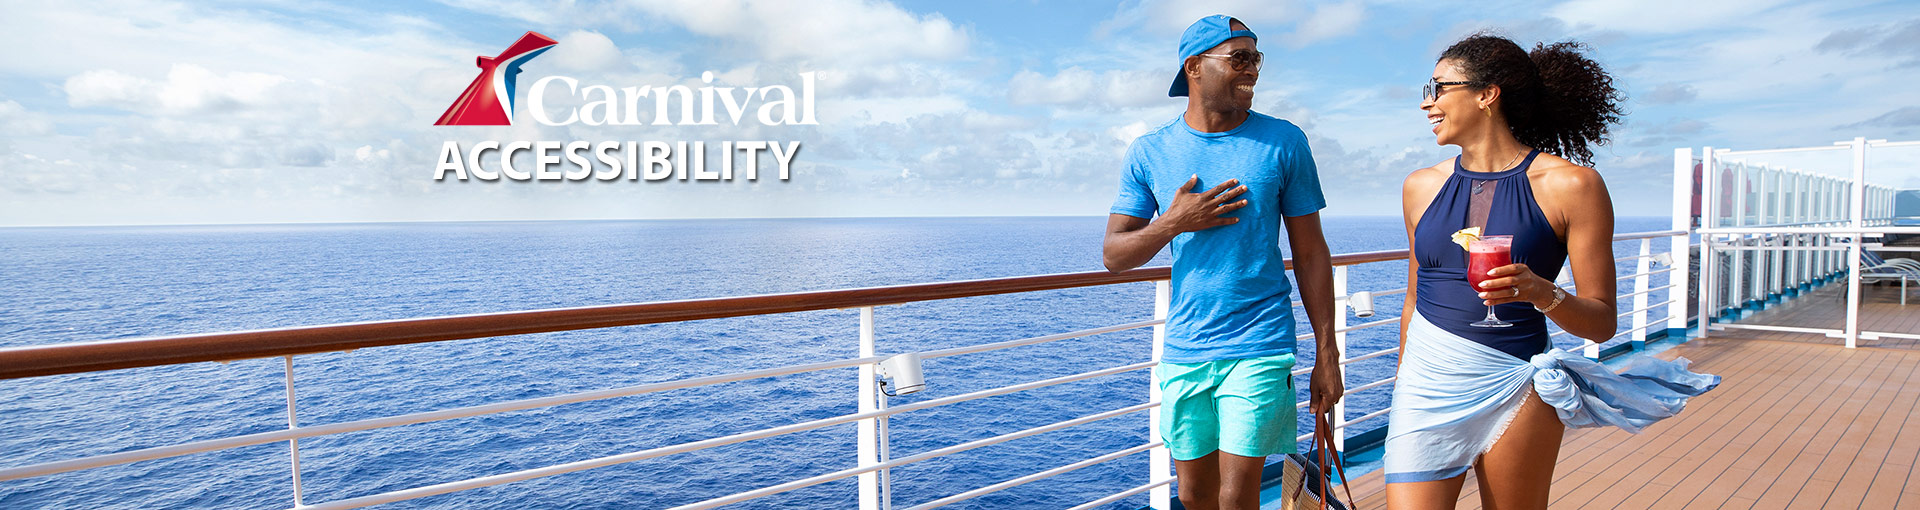 Carnival Cruise Lines Accessibility